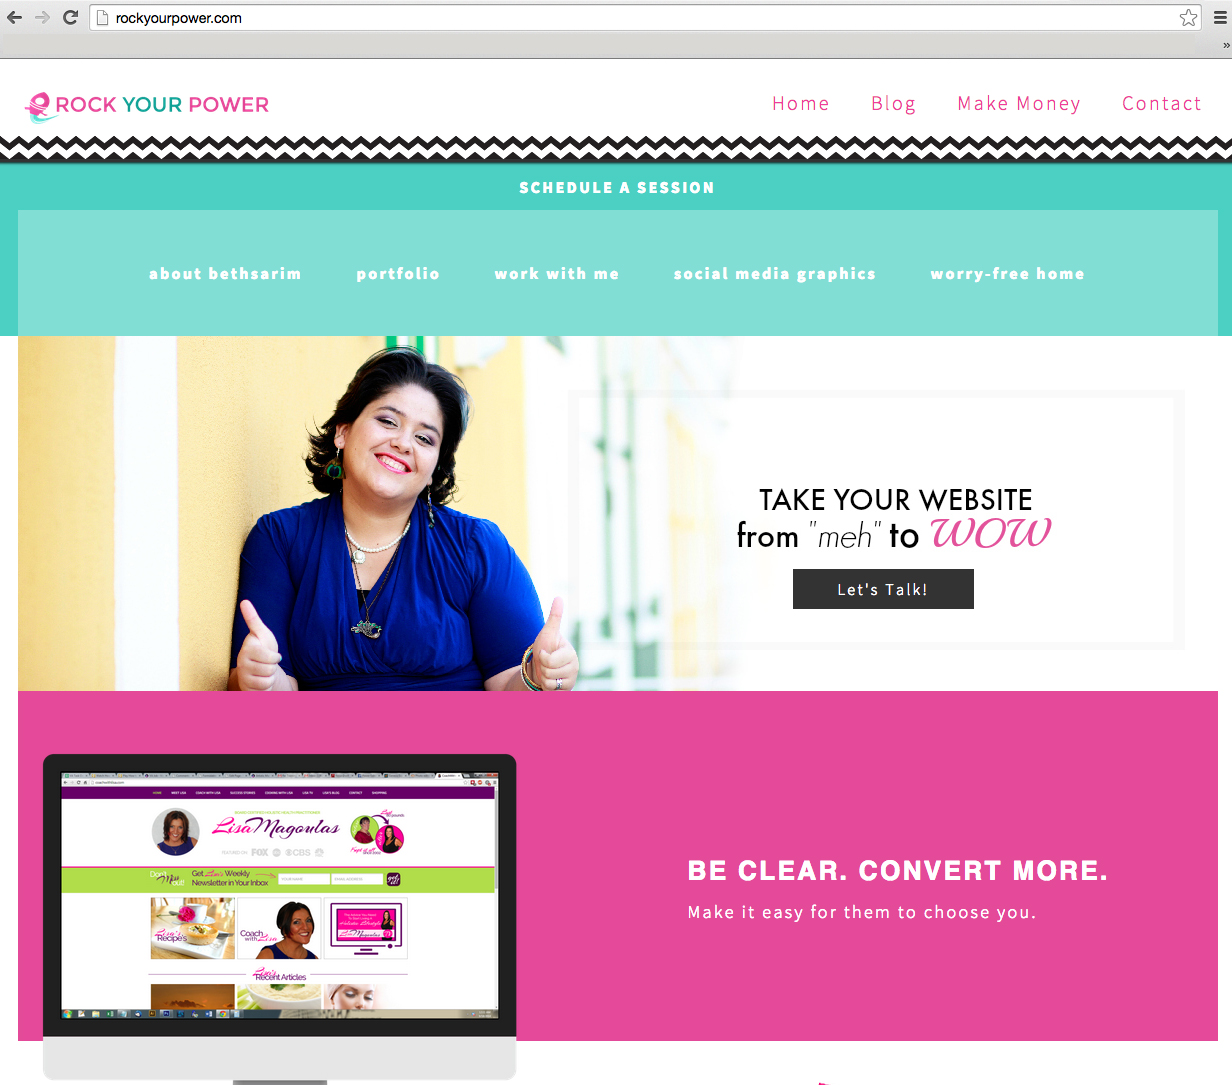 Rock Your Power: Website Shows True Colors - Home Page